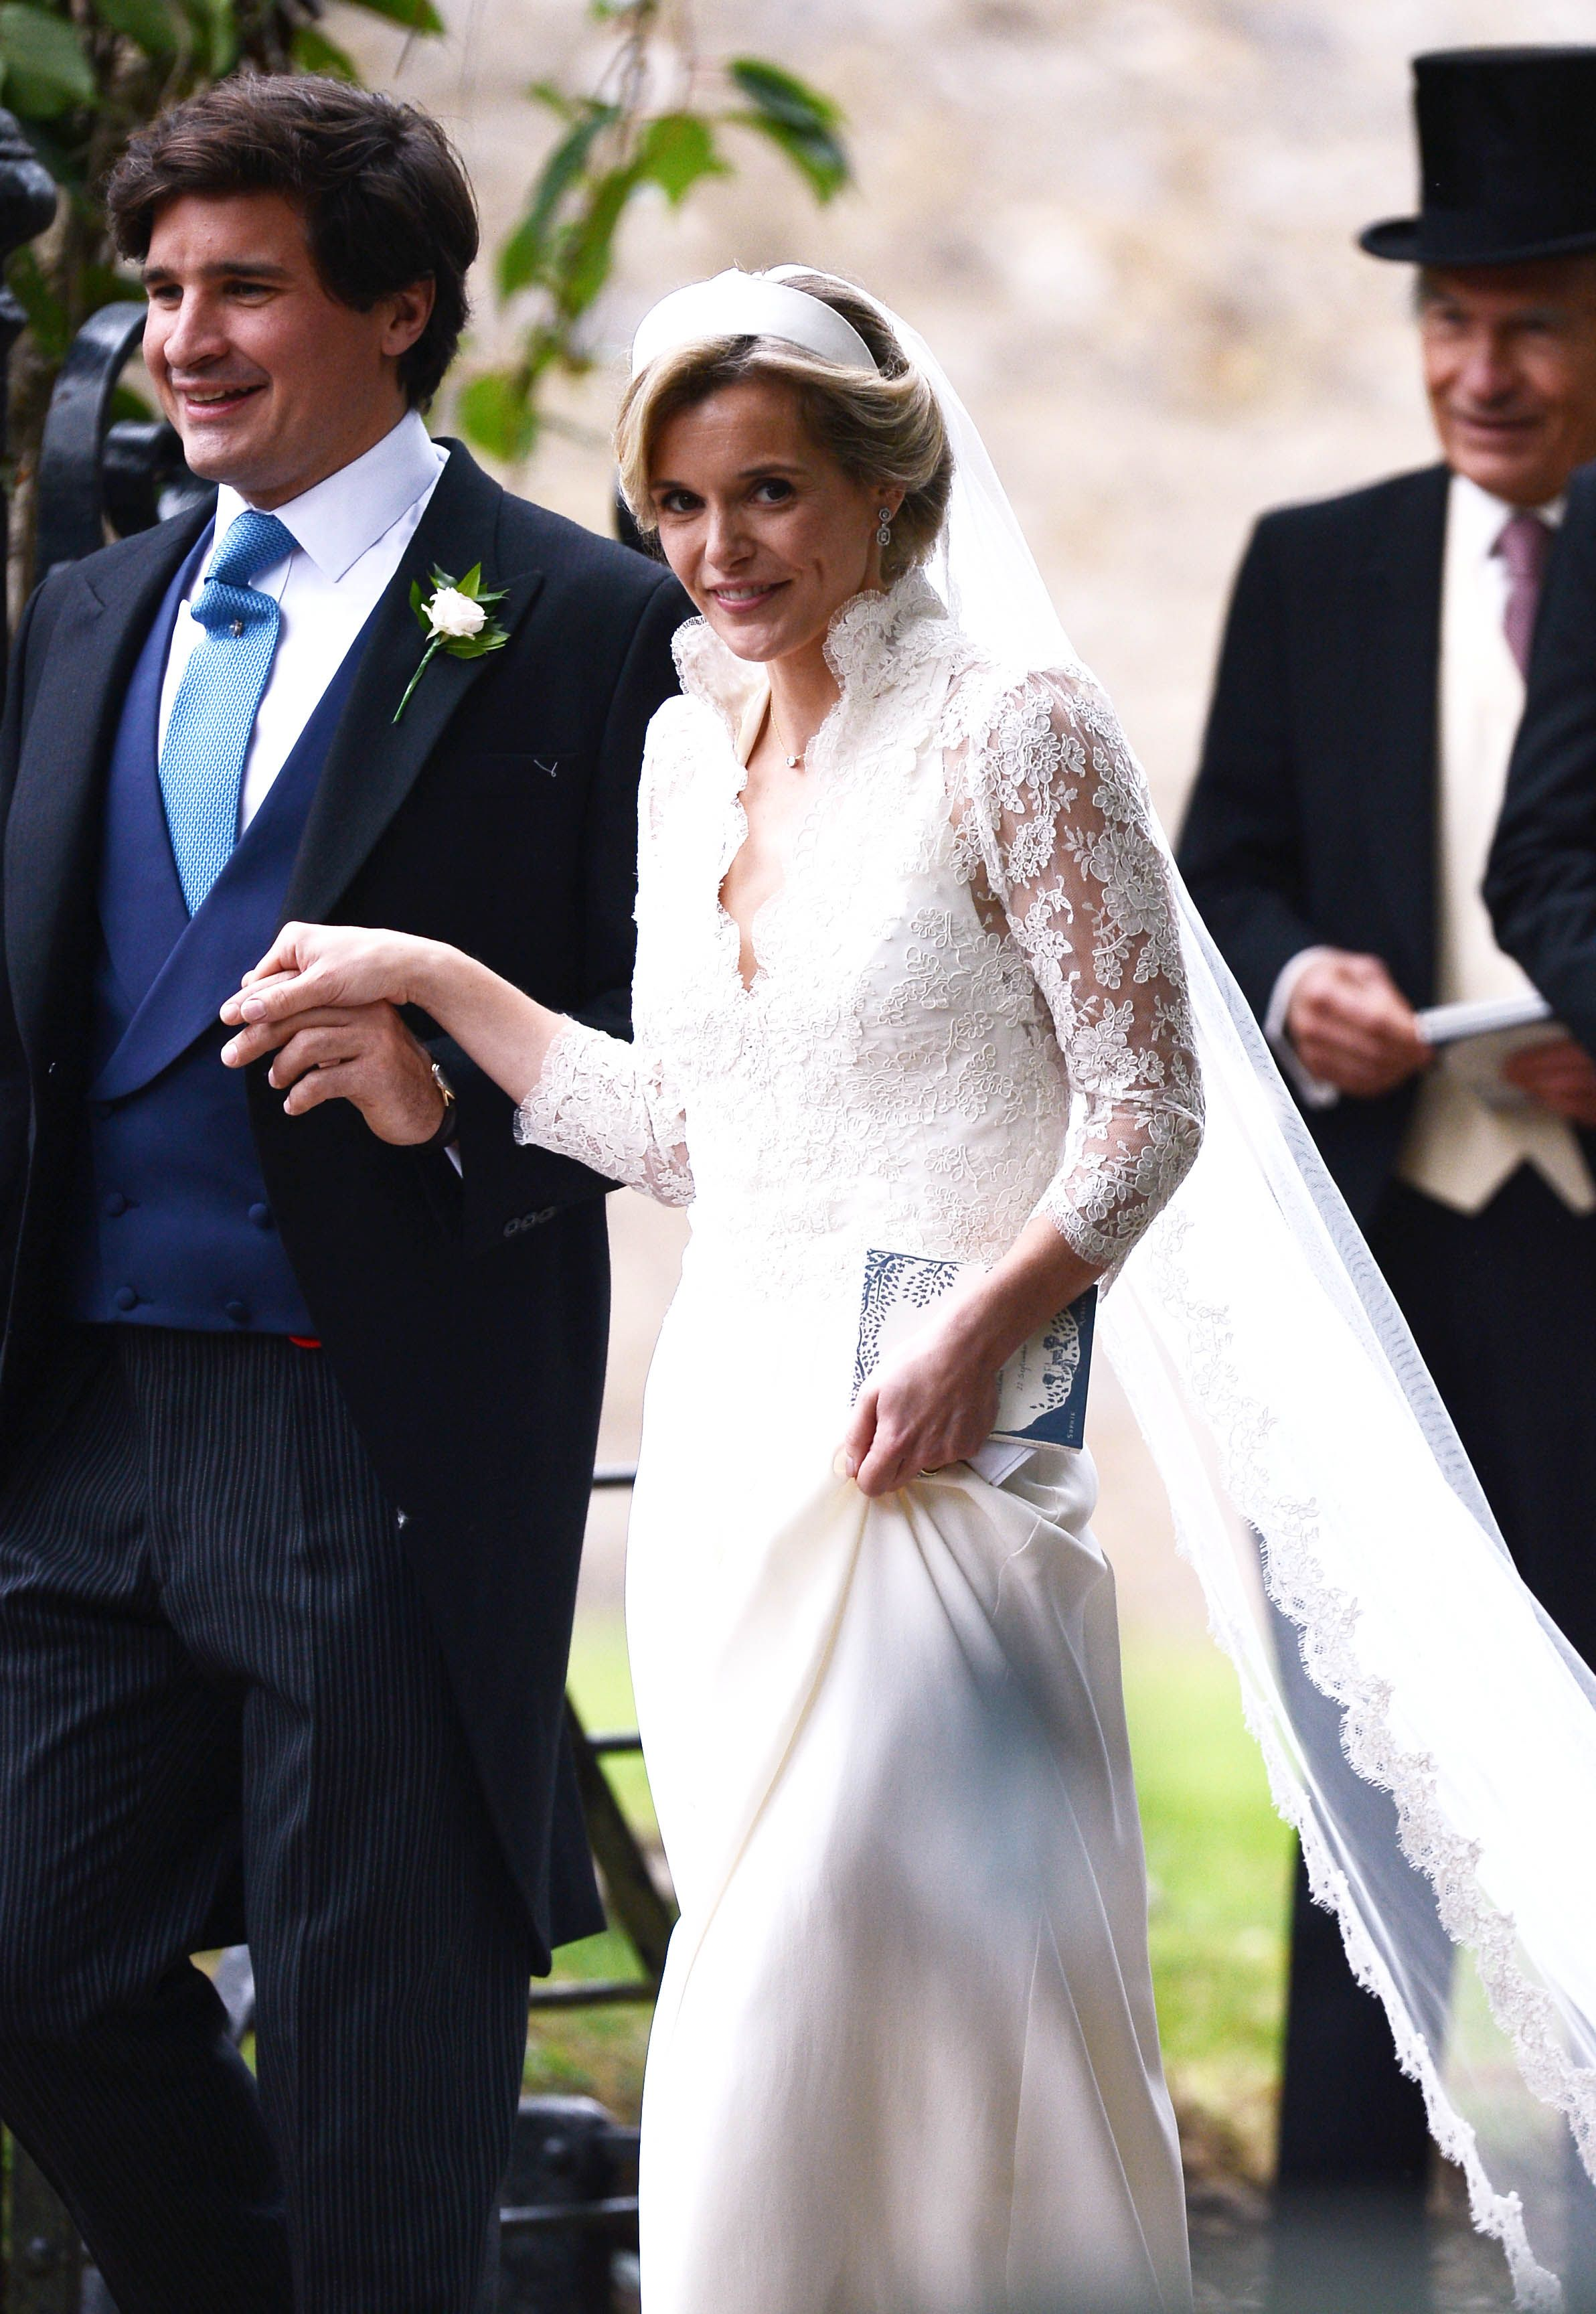 In September, both Prince George and Princess Charlotte were bridal attendants for the wedding of Kate Middleton's close friend Sophie Carter to Robert Snuggs at St. Andrew's Episcopal Church in Norfolk.